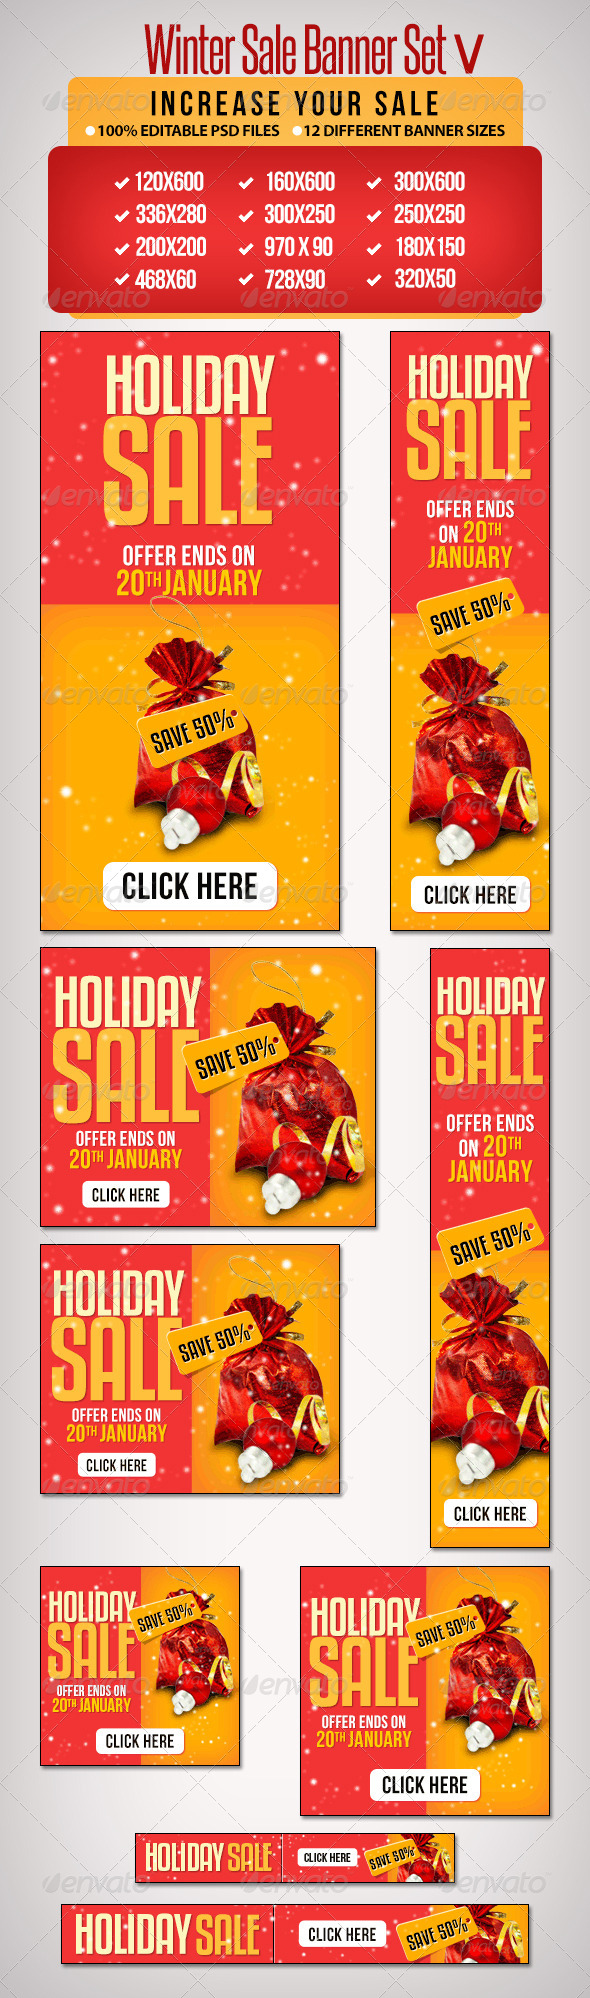 GraphicRiver Winter Sale Banner Set V 6528666